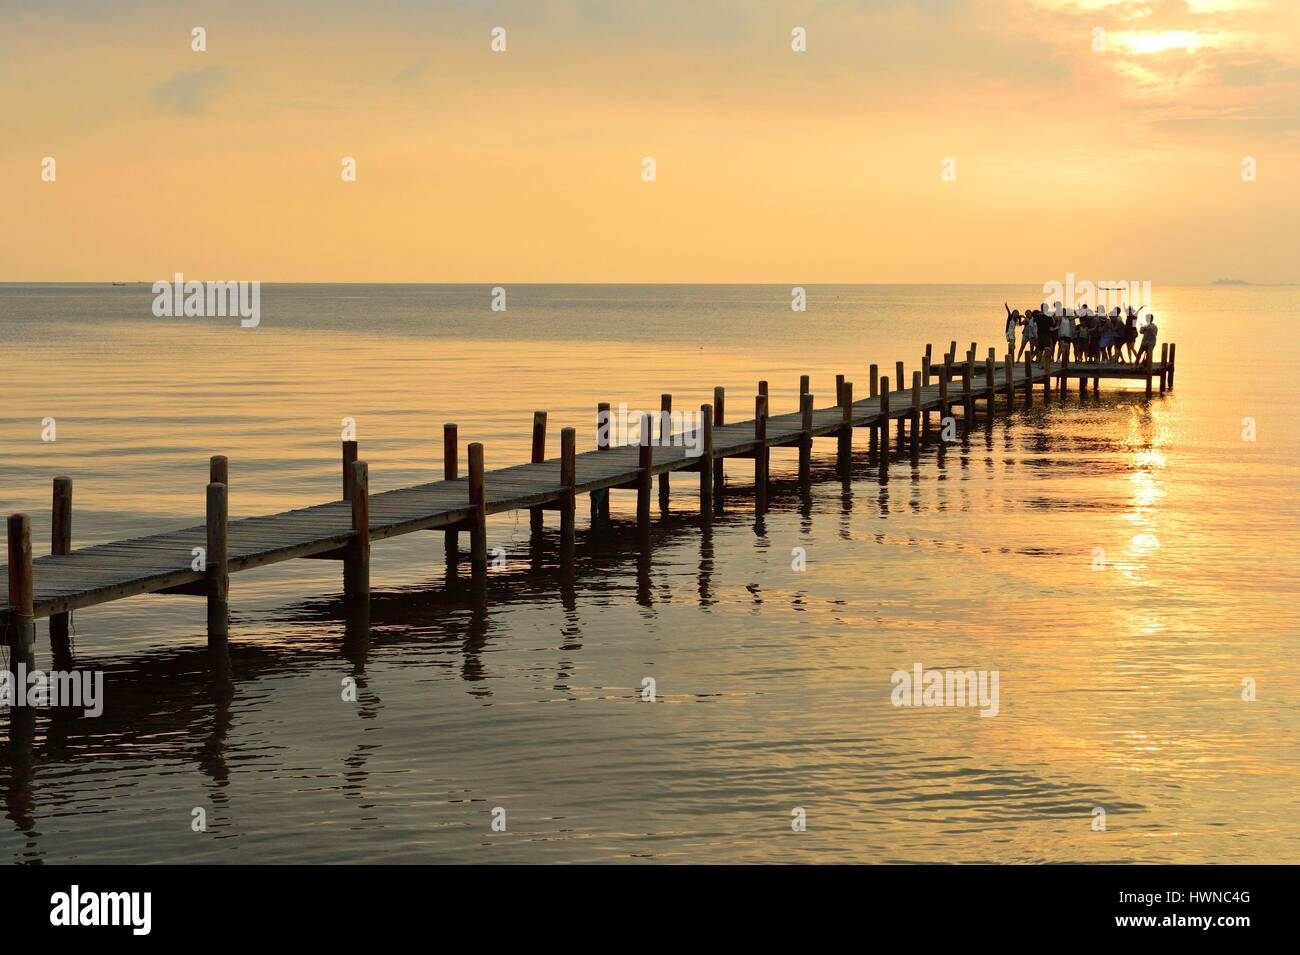 Cambodia, Krong Kep Province, Kep village, Sailing Club warf at sunset - Stock Image